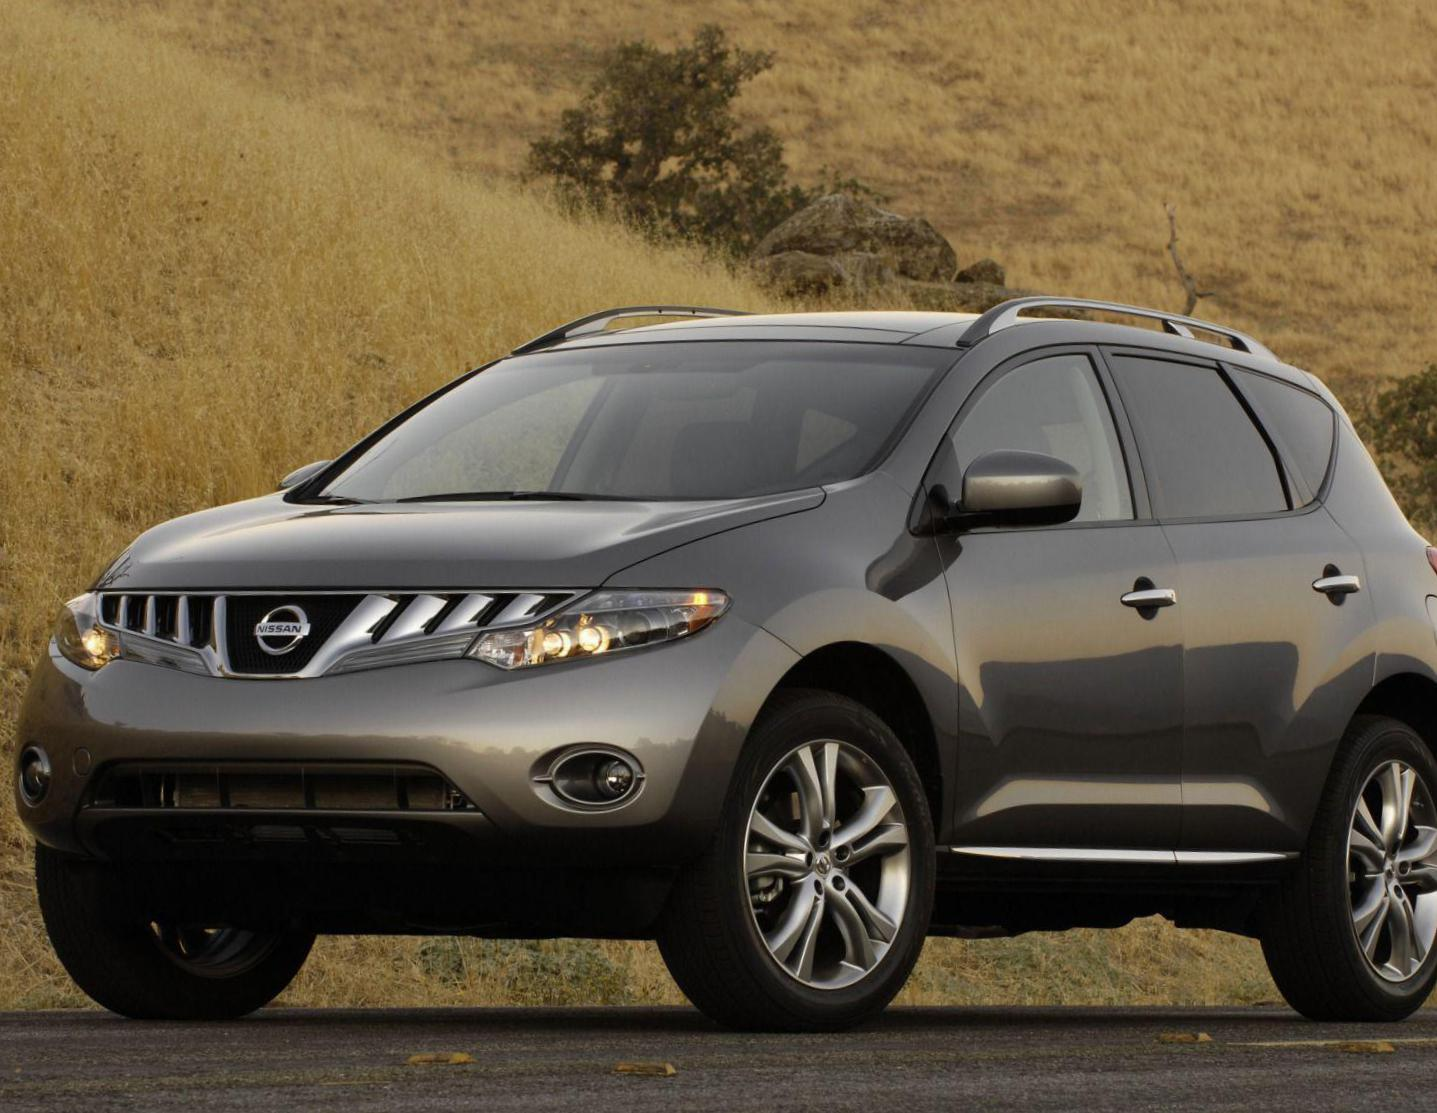 Murano Nissan prices 2011